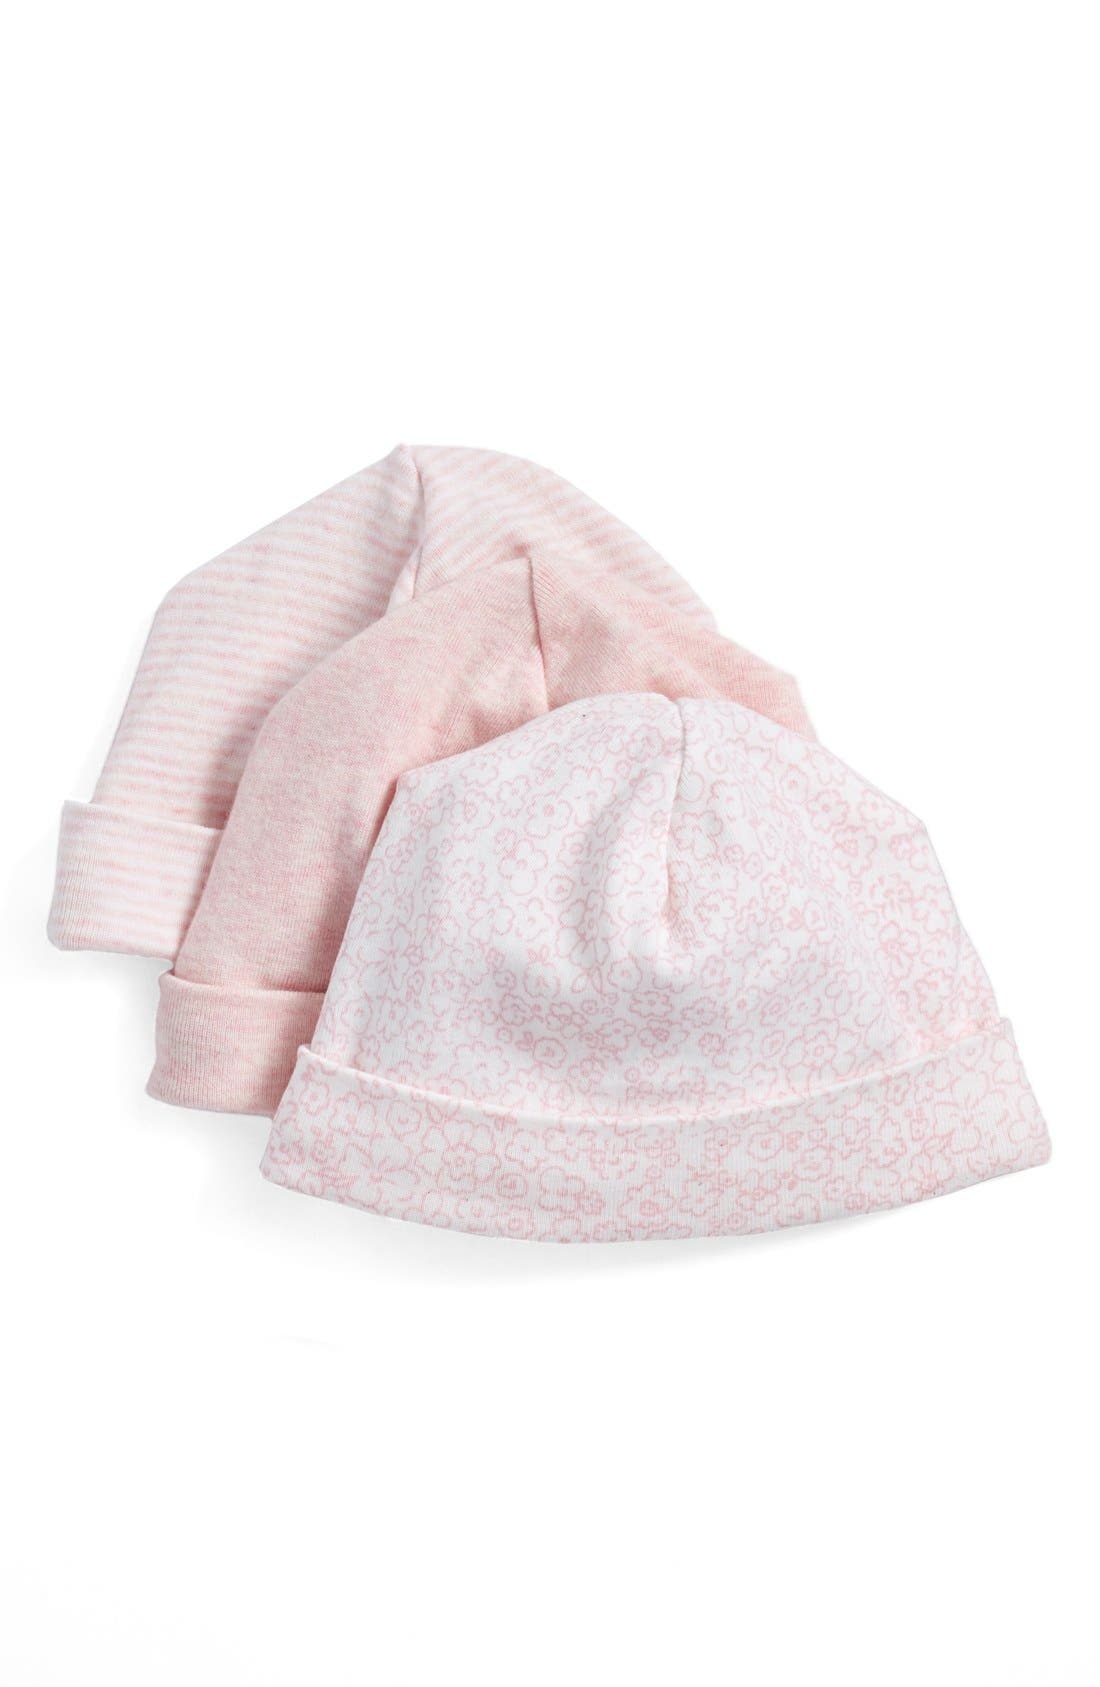 Nordstrom Baby Beanie Hats (3-Pack) (Baby)